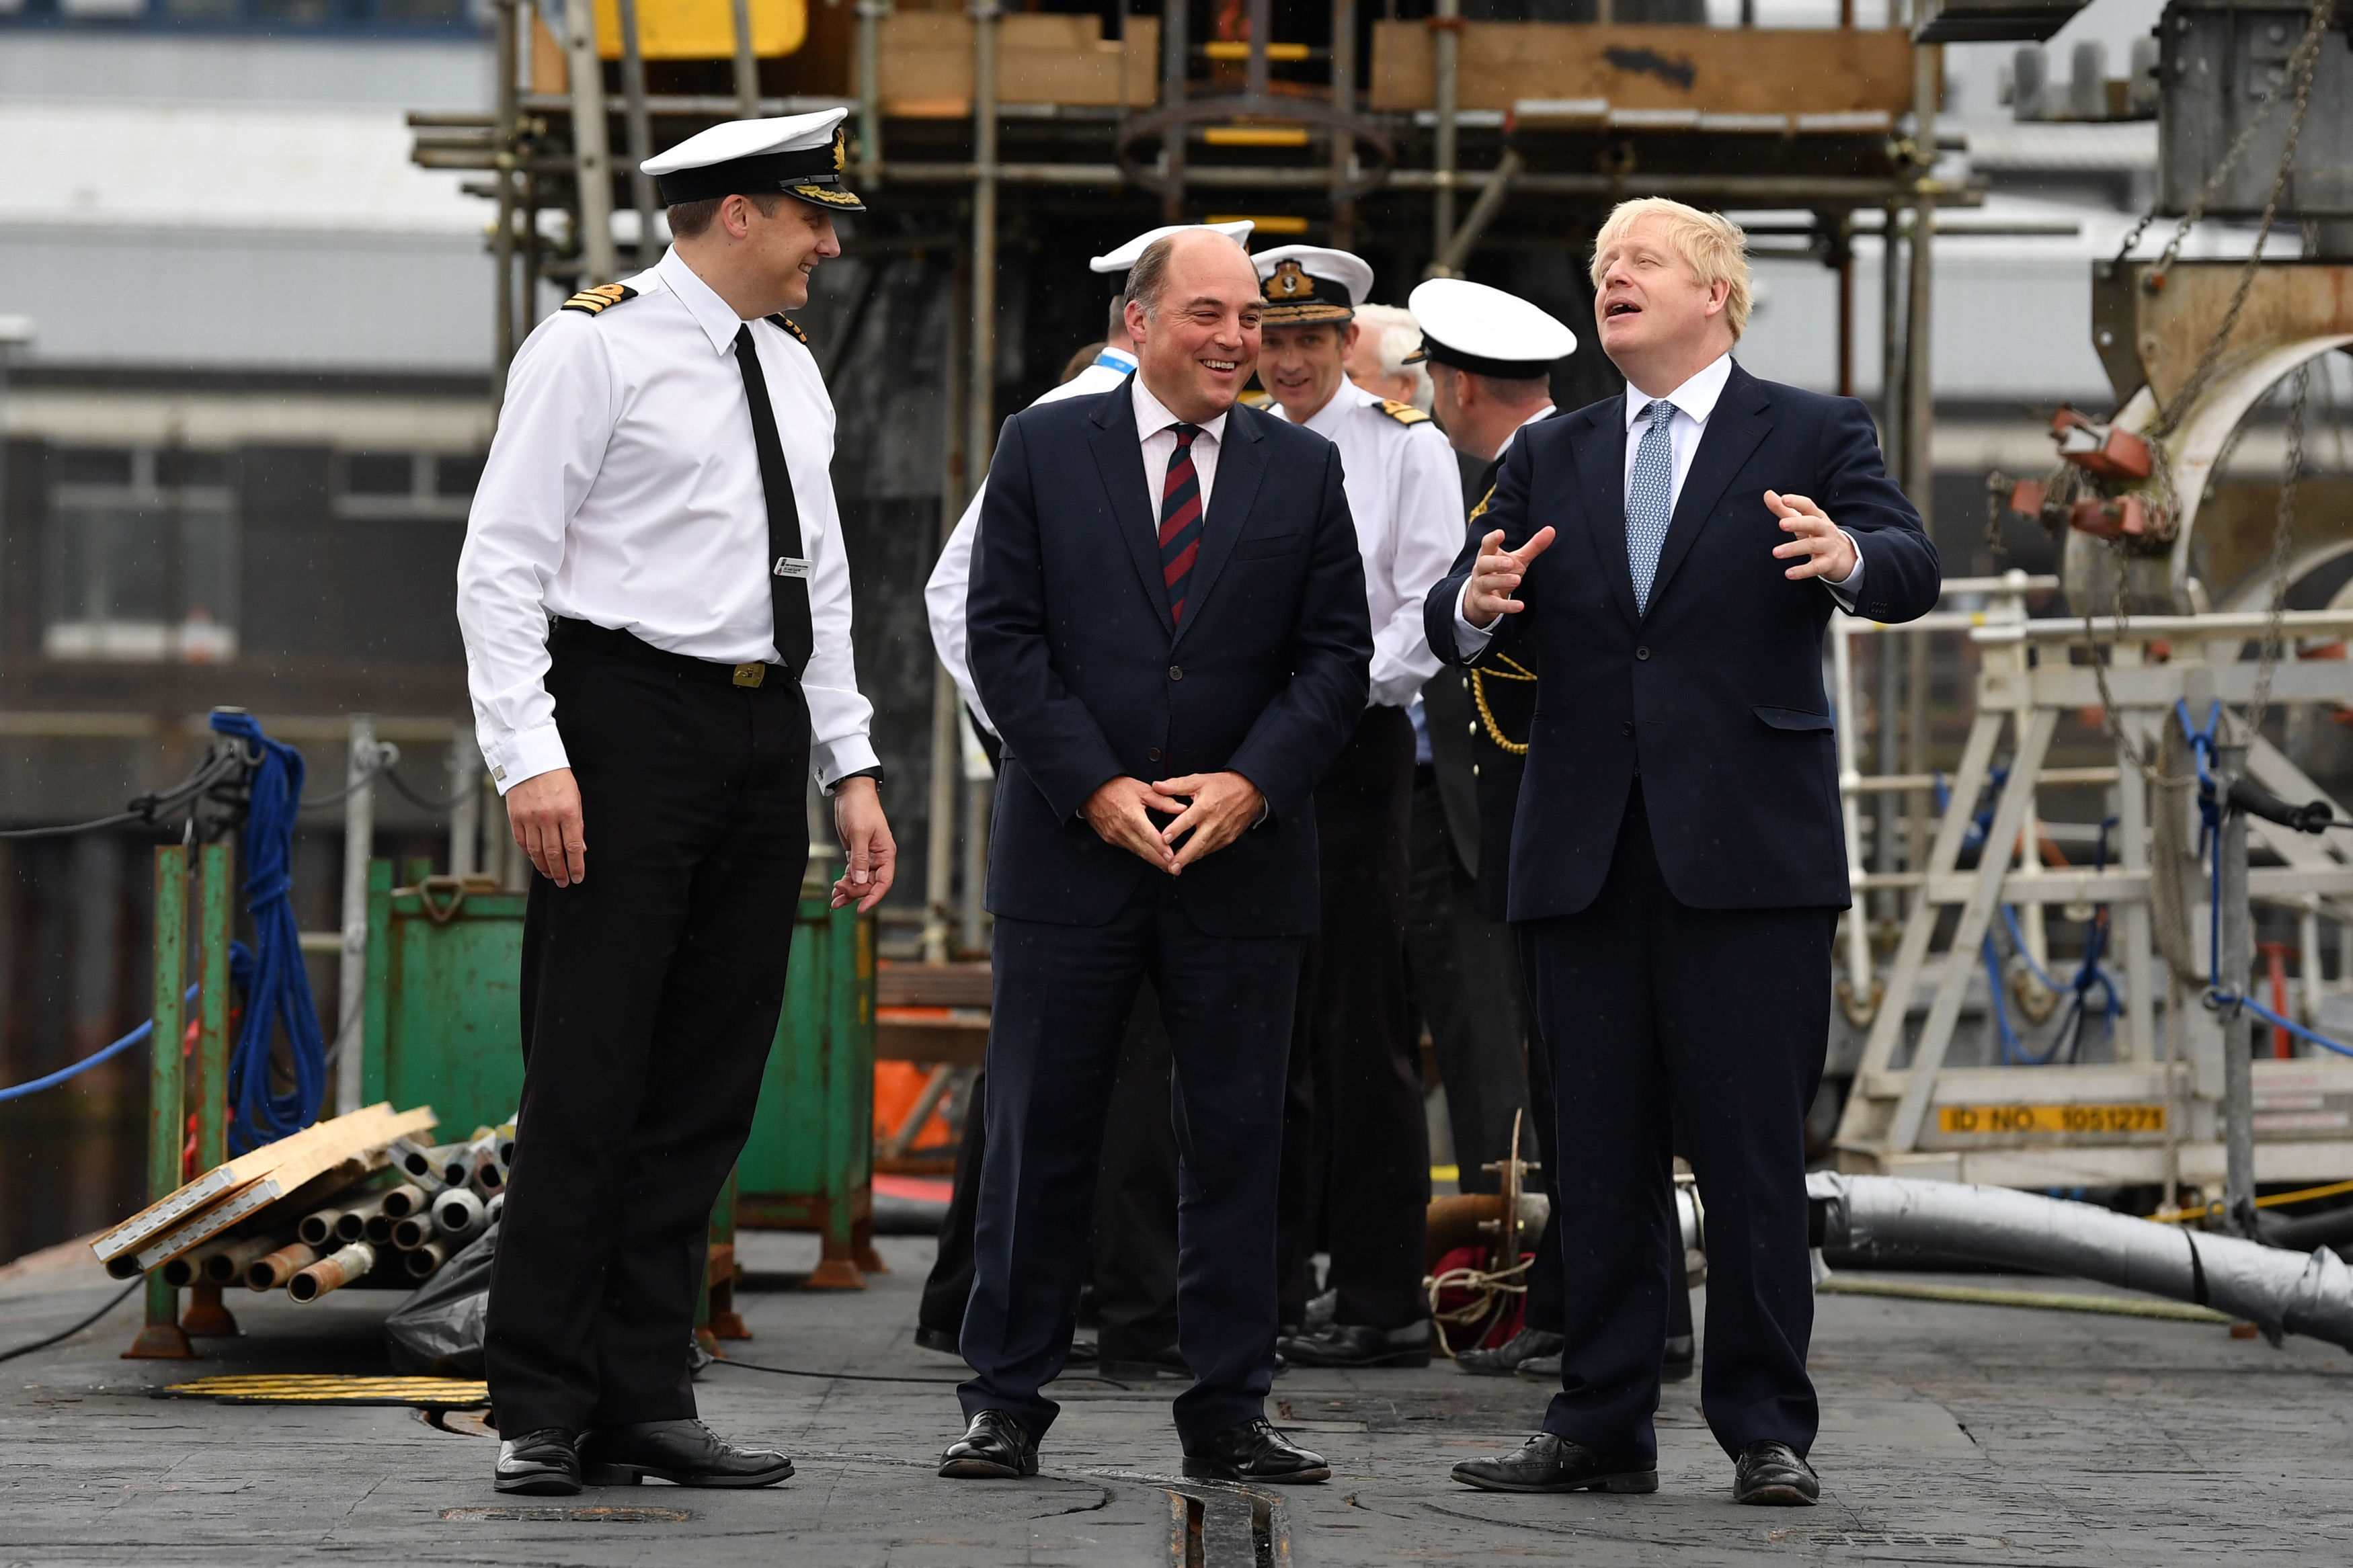 Prime Minister Boris Johnson visits HMS Victorious with Defence Secretary Ben Wallace accompanied by Commander Justin Codd at HM Naval Base Clyde in Faslane, Scotland.